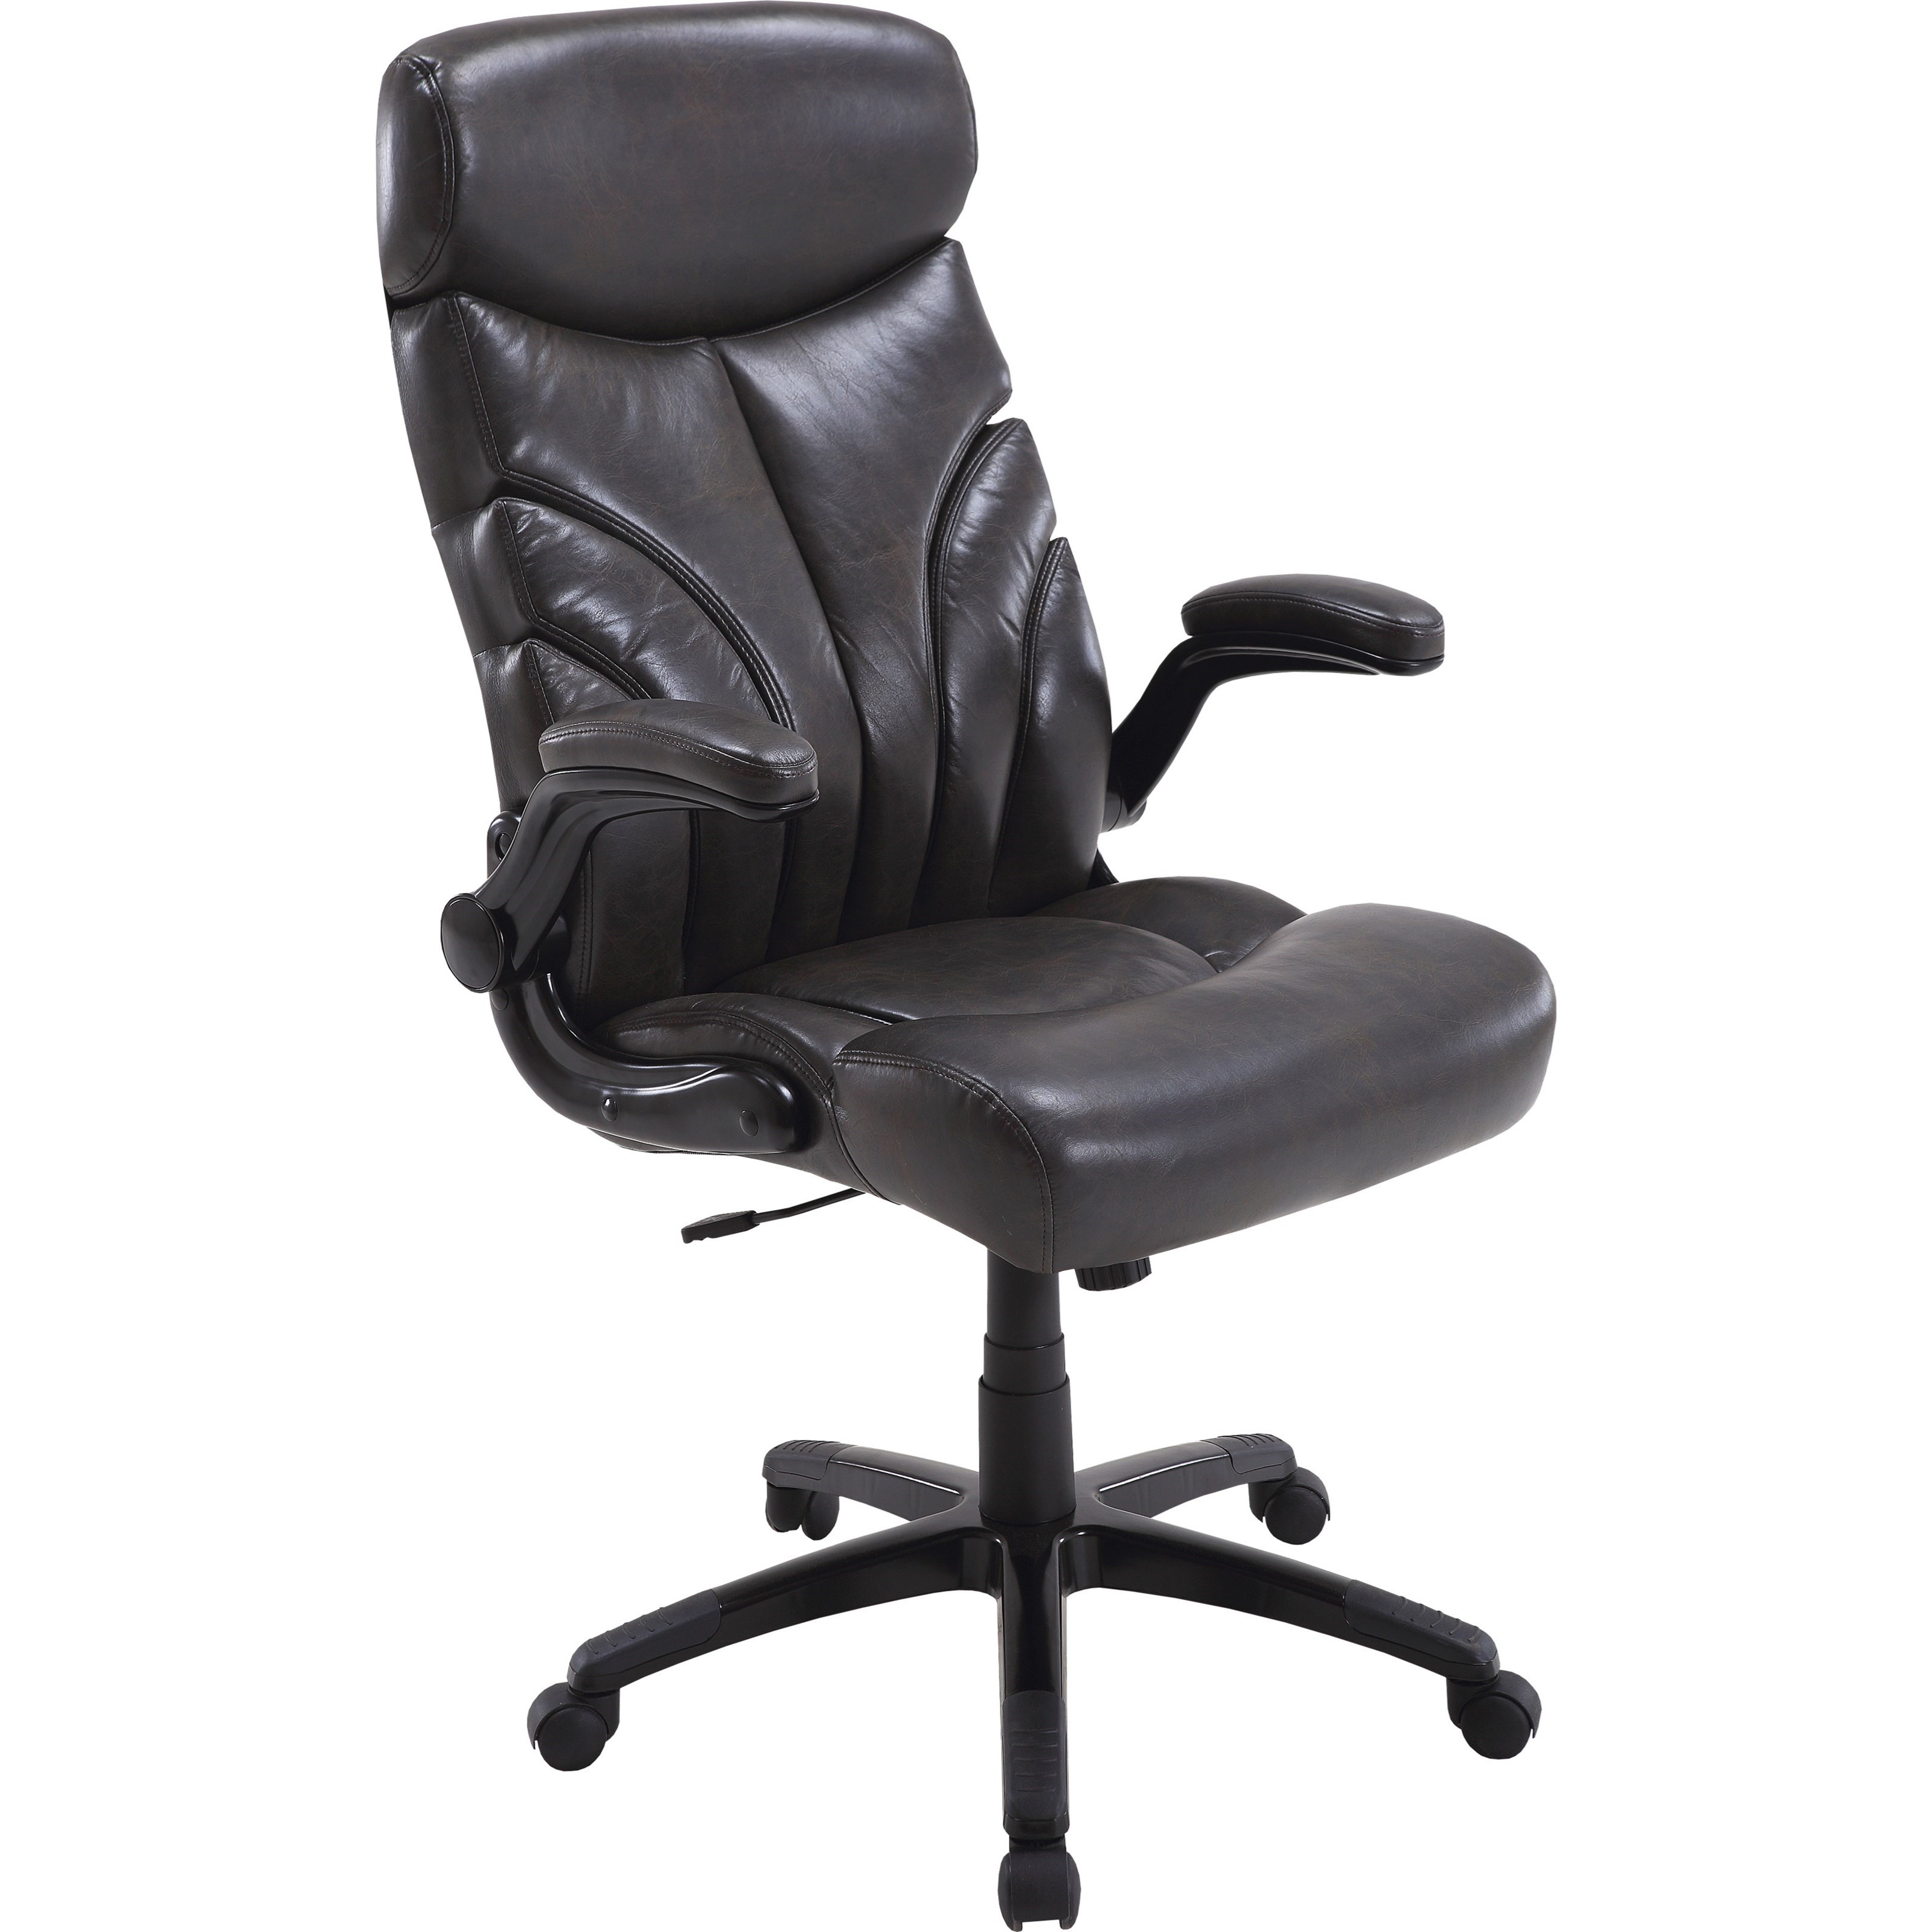 Parker Living Desk Chairs Contemporary Desk Chair with